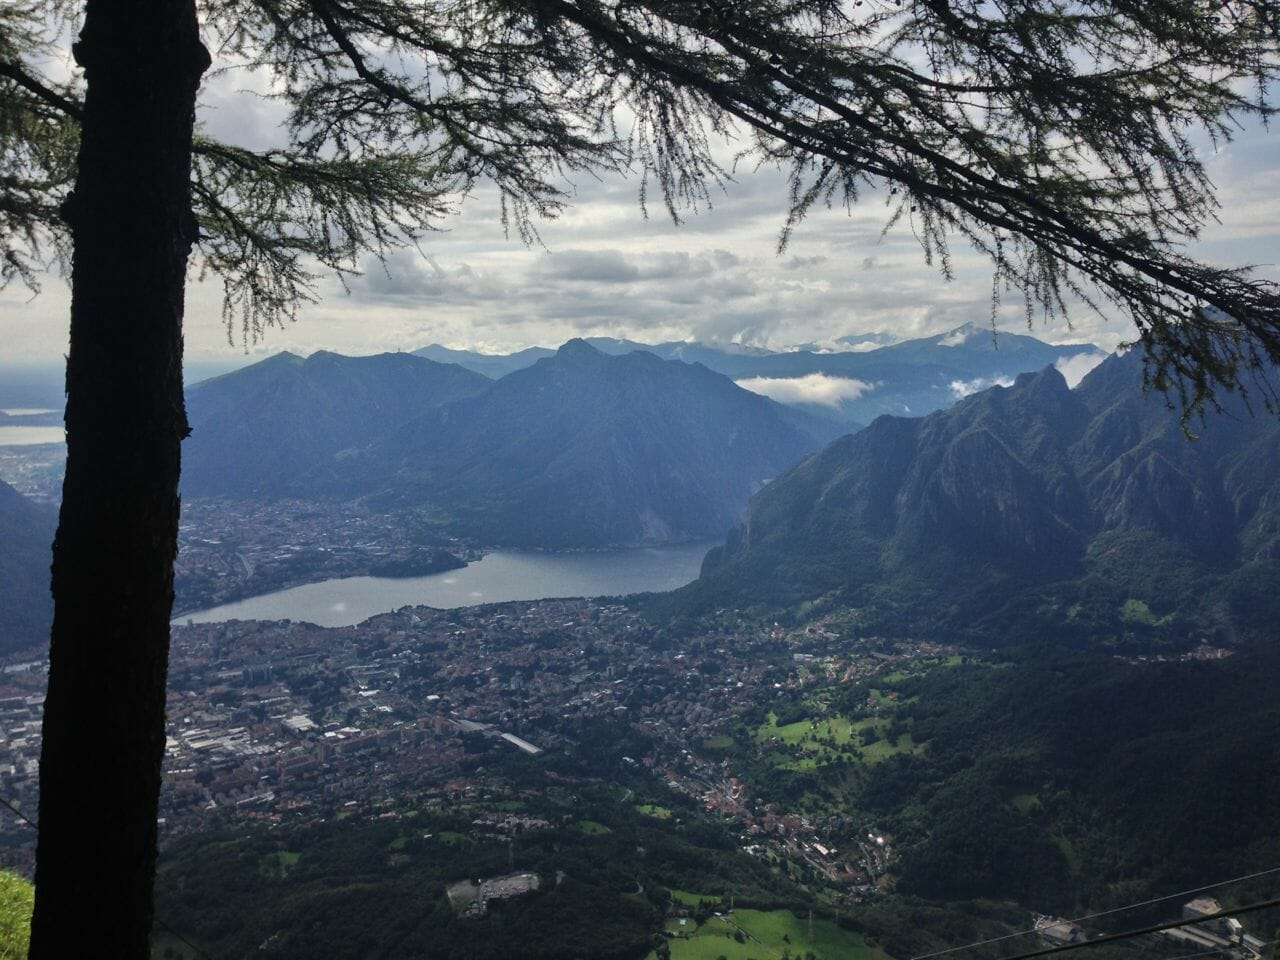 The view of Lecco from Mount Resegone on the Piani D'Erna plateau.